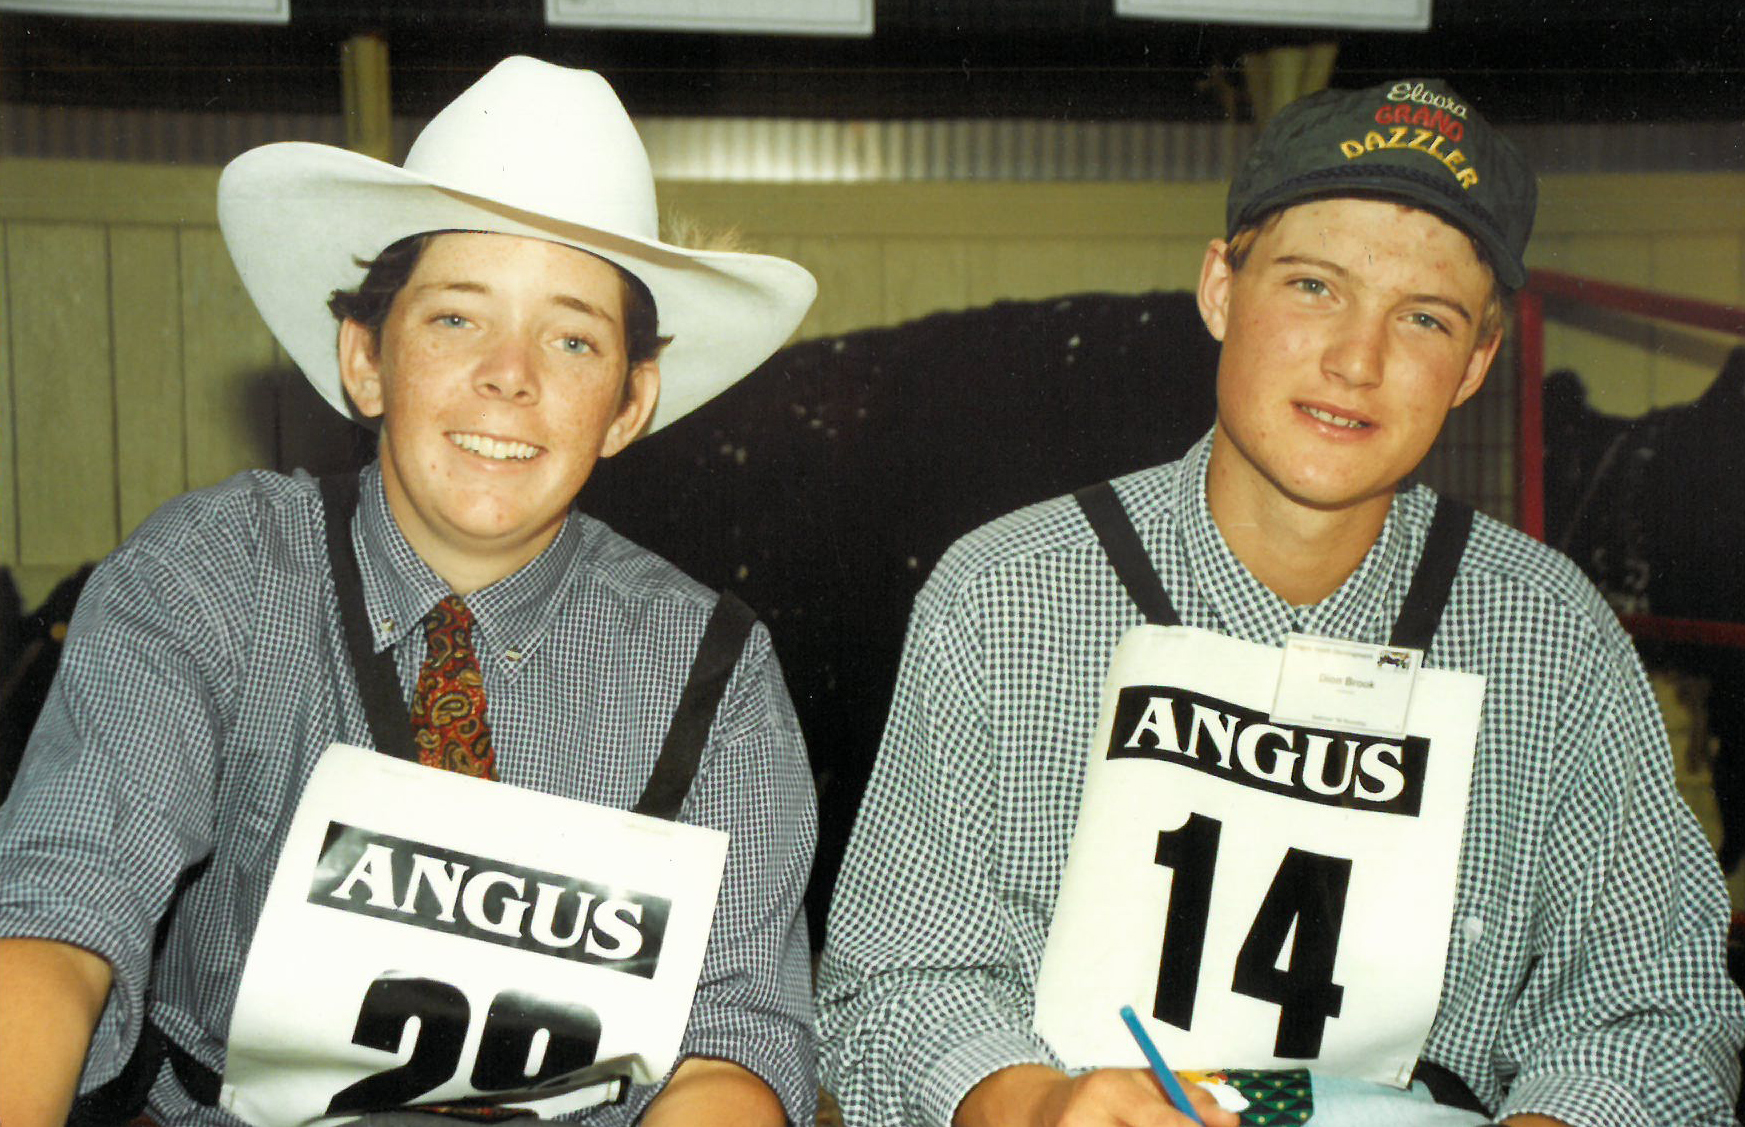 Tom Wilding-Davies with Dion Brook at the 2001 Angus Youth Roundup in Hamilton, VIC